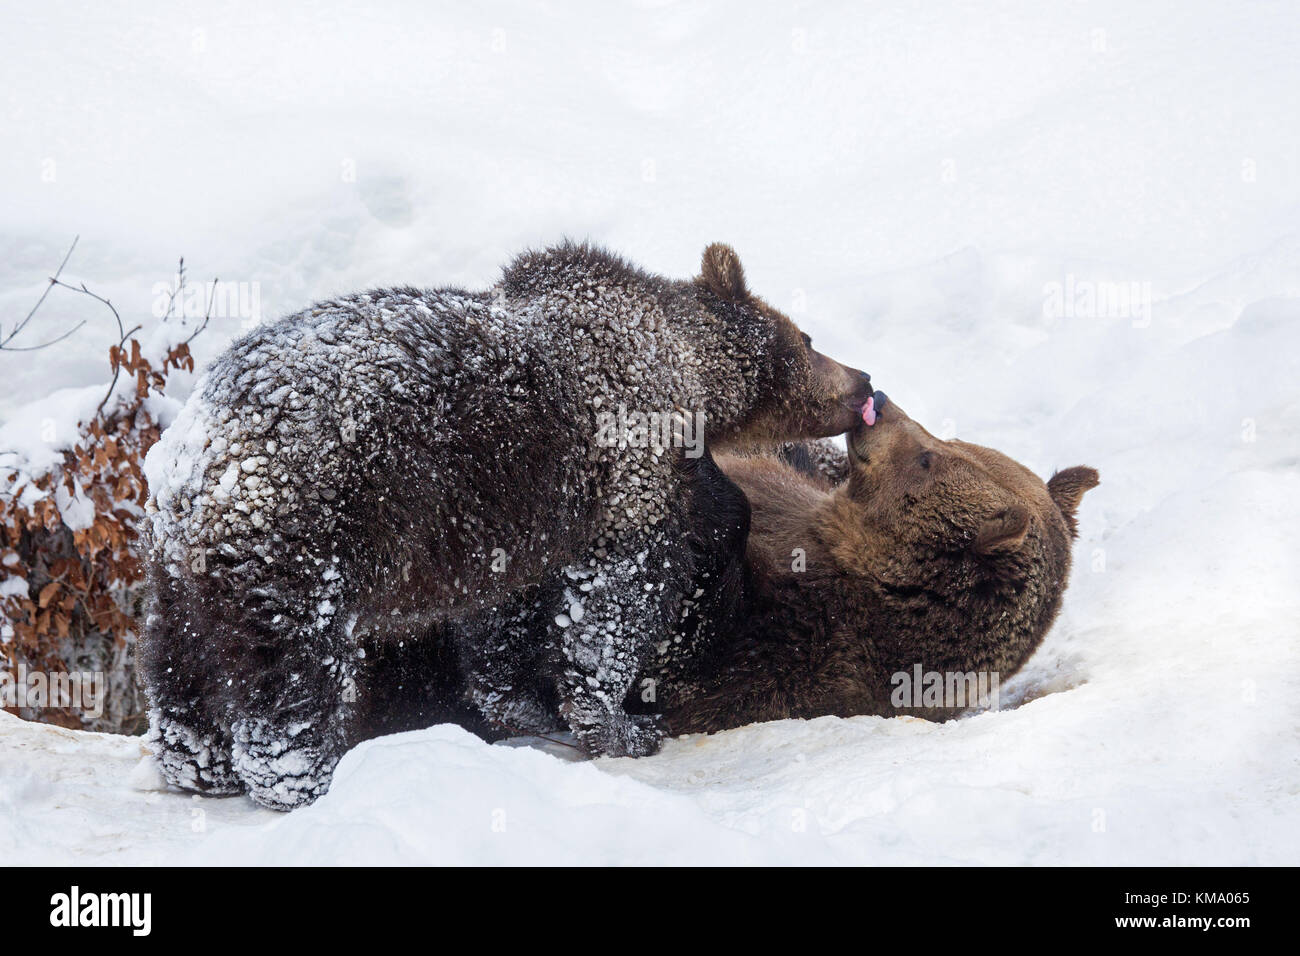 One-year old cub greeting female brown bear (Ursus arctos arctos) in the snow in winter - Stock Image